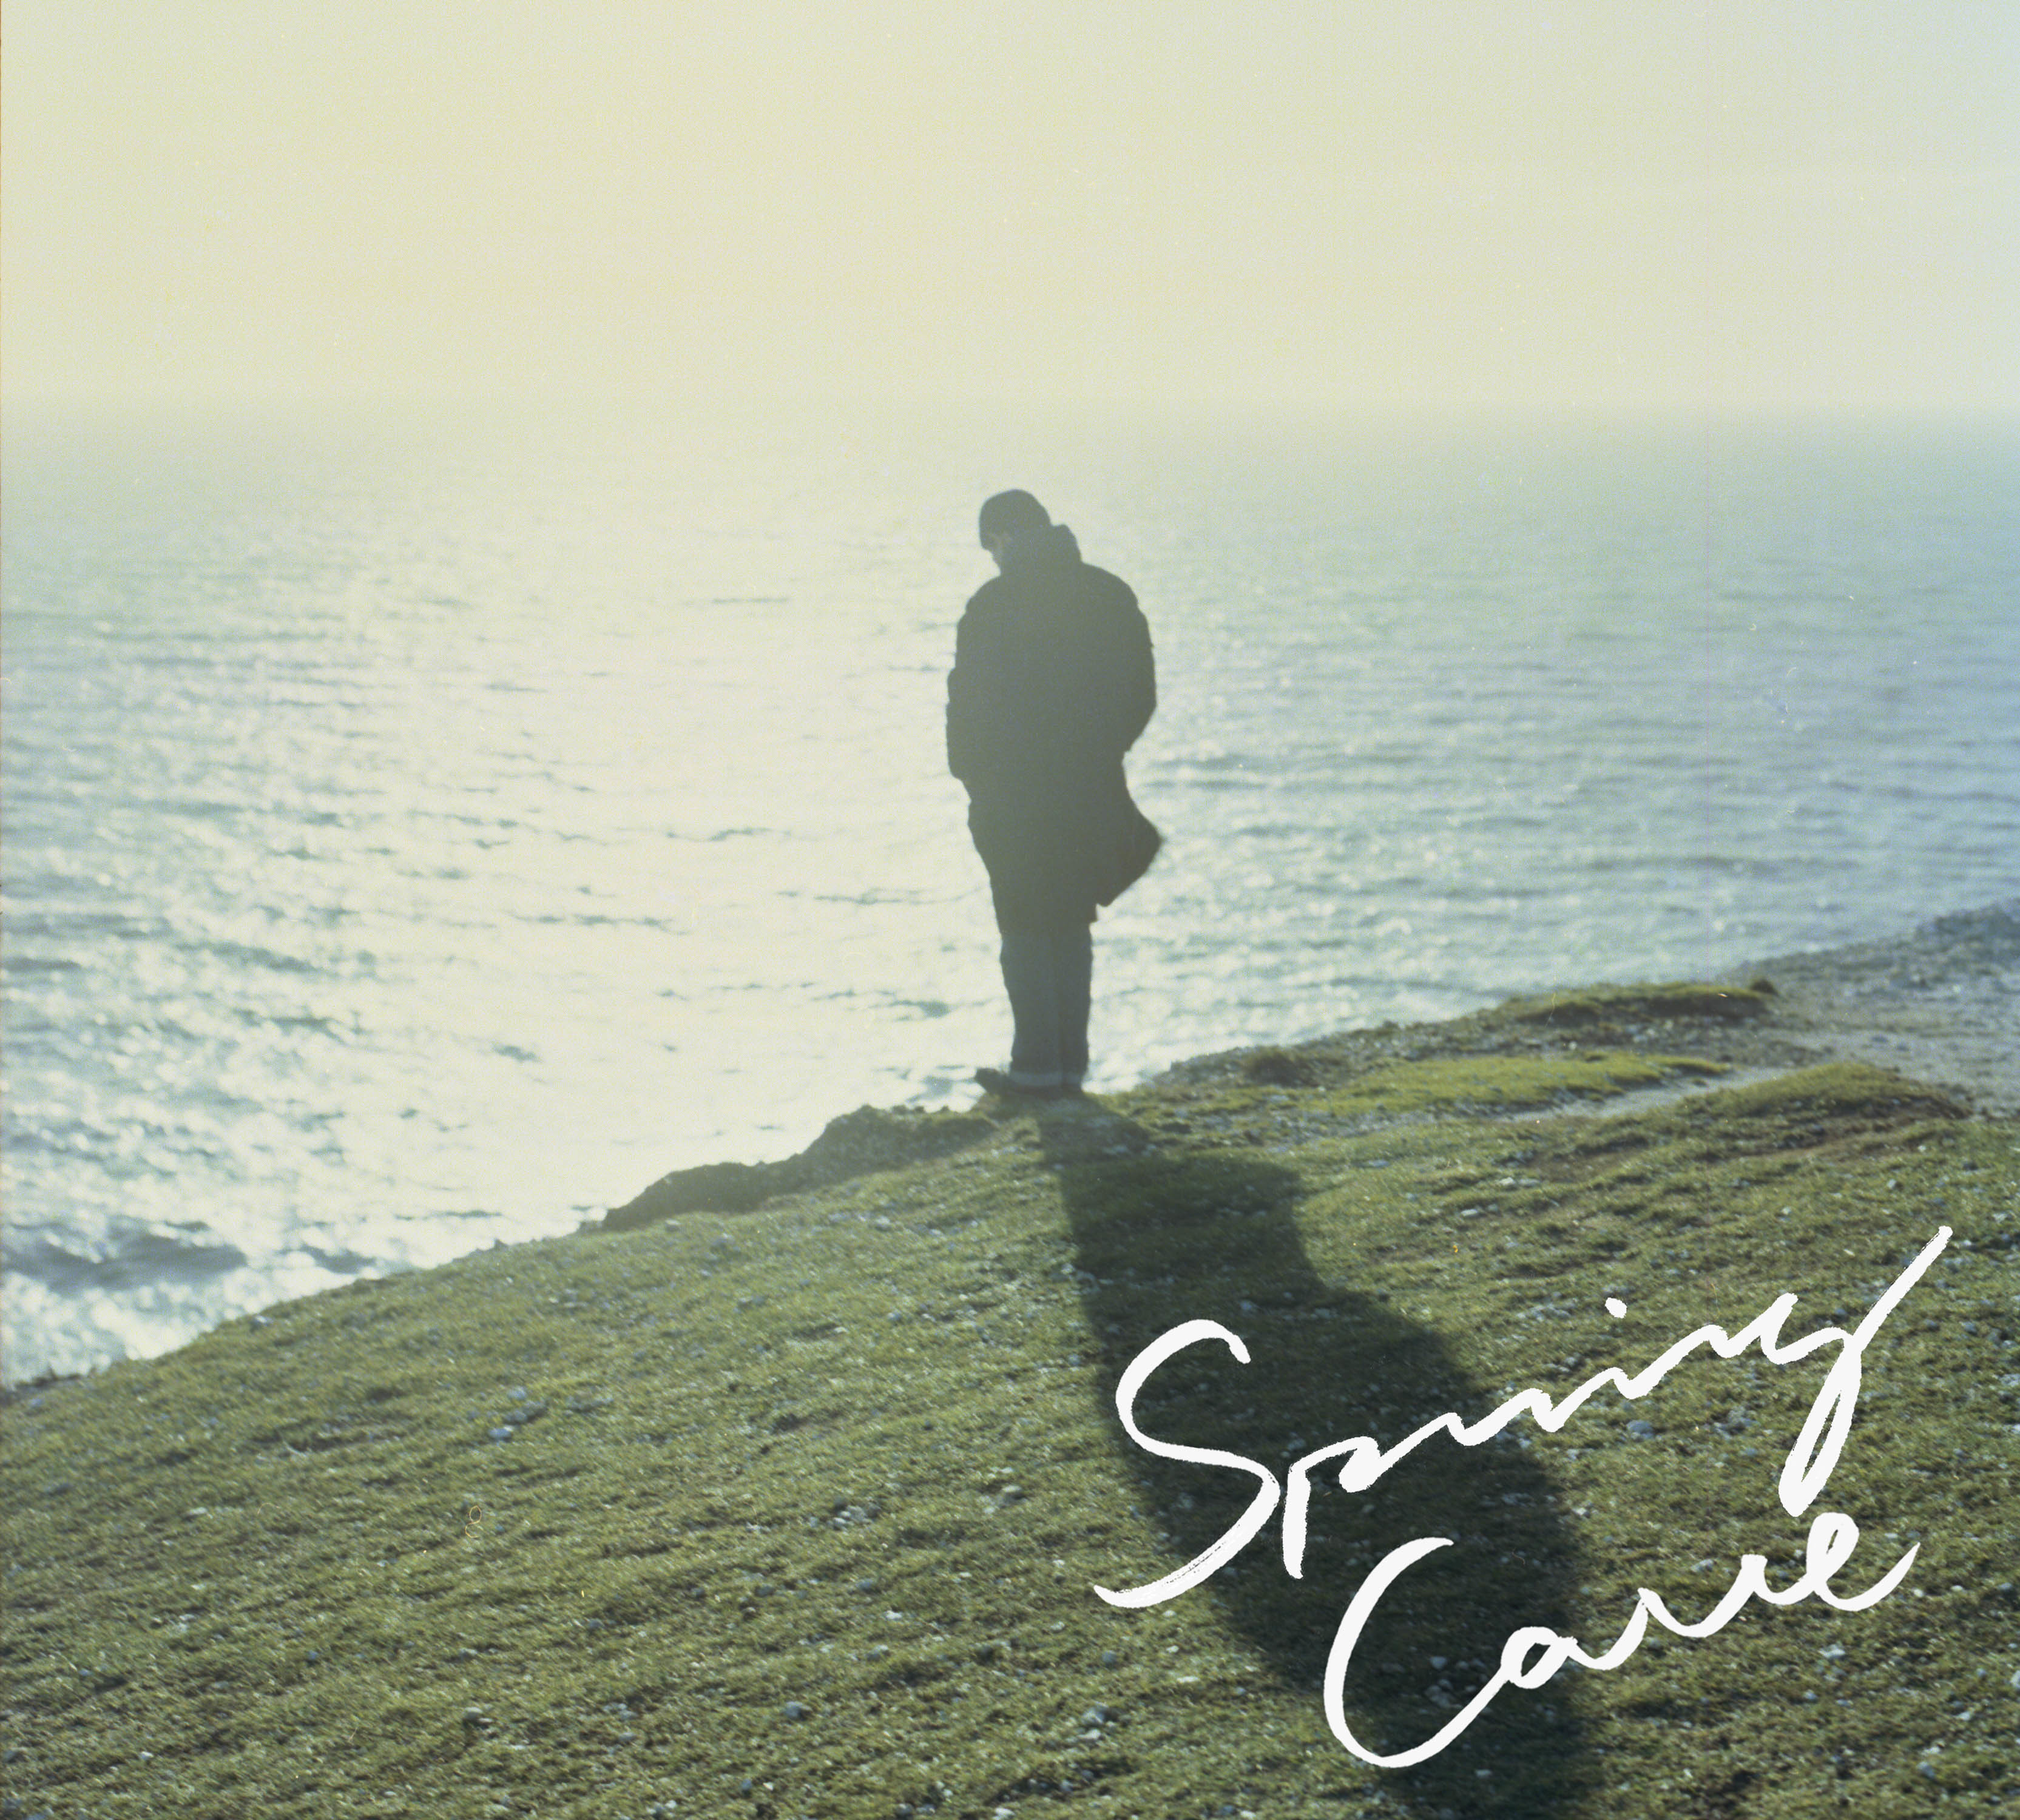 Yogee New Waves『SPRING CAVE e.p.』通常盤